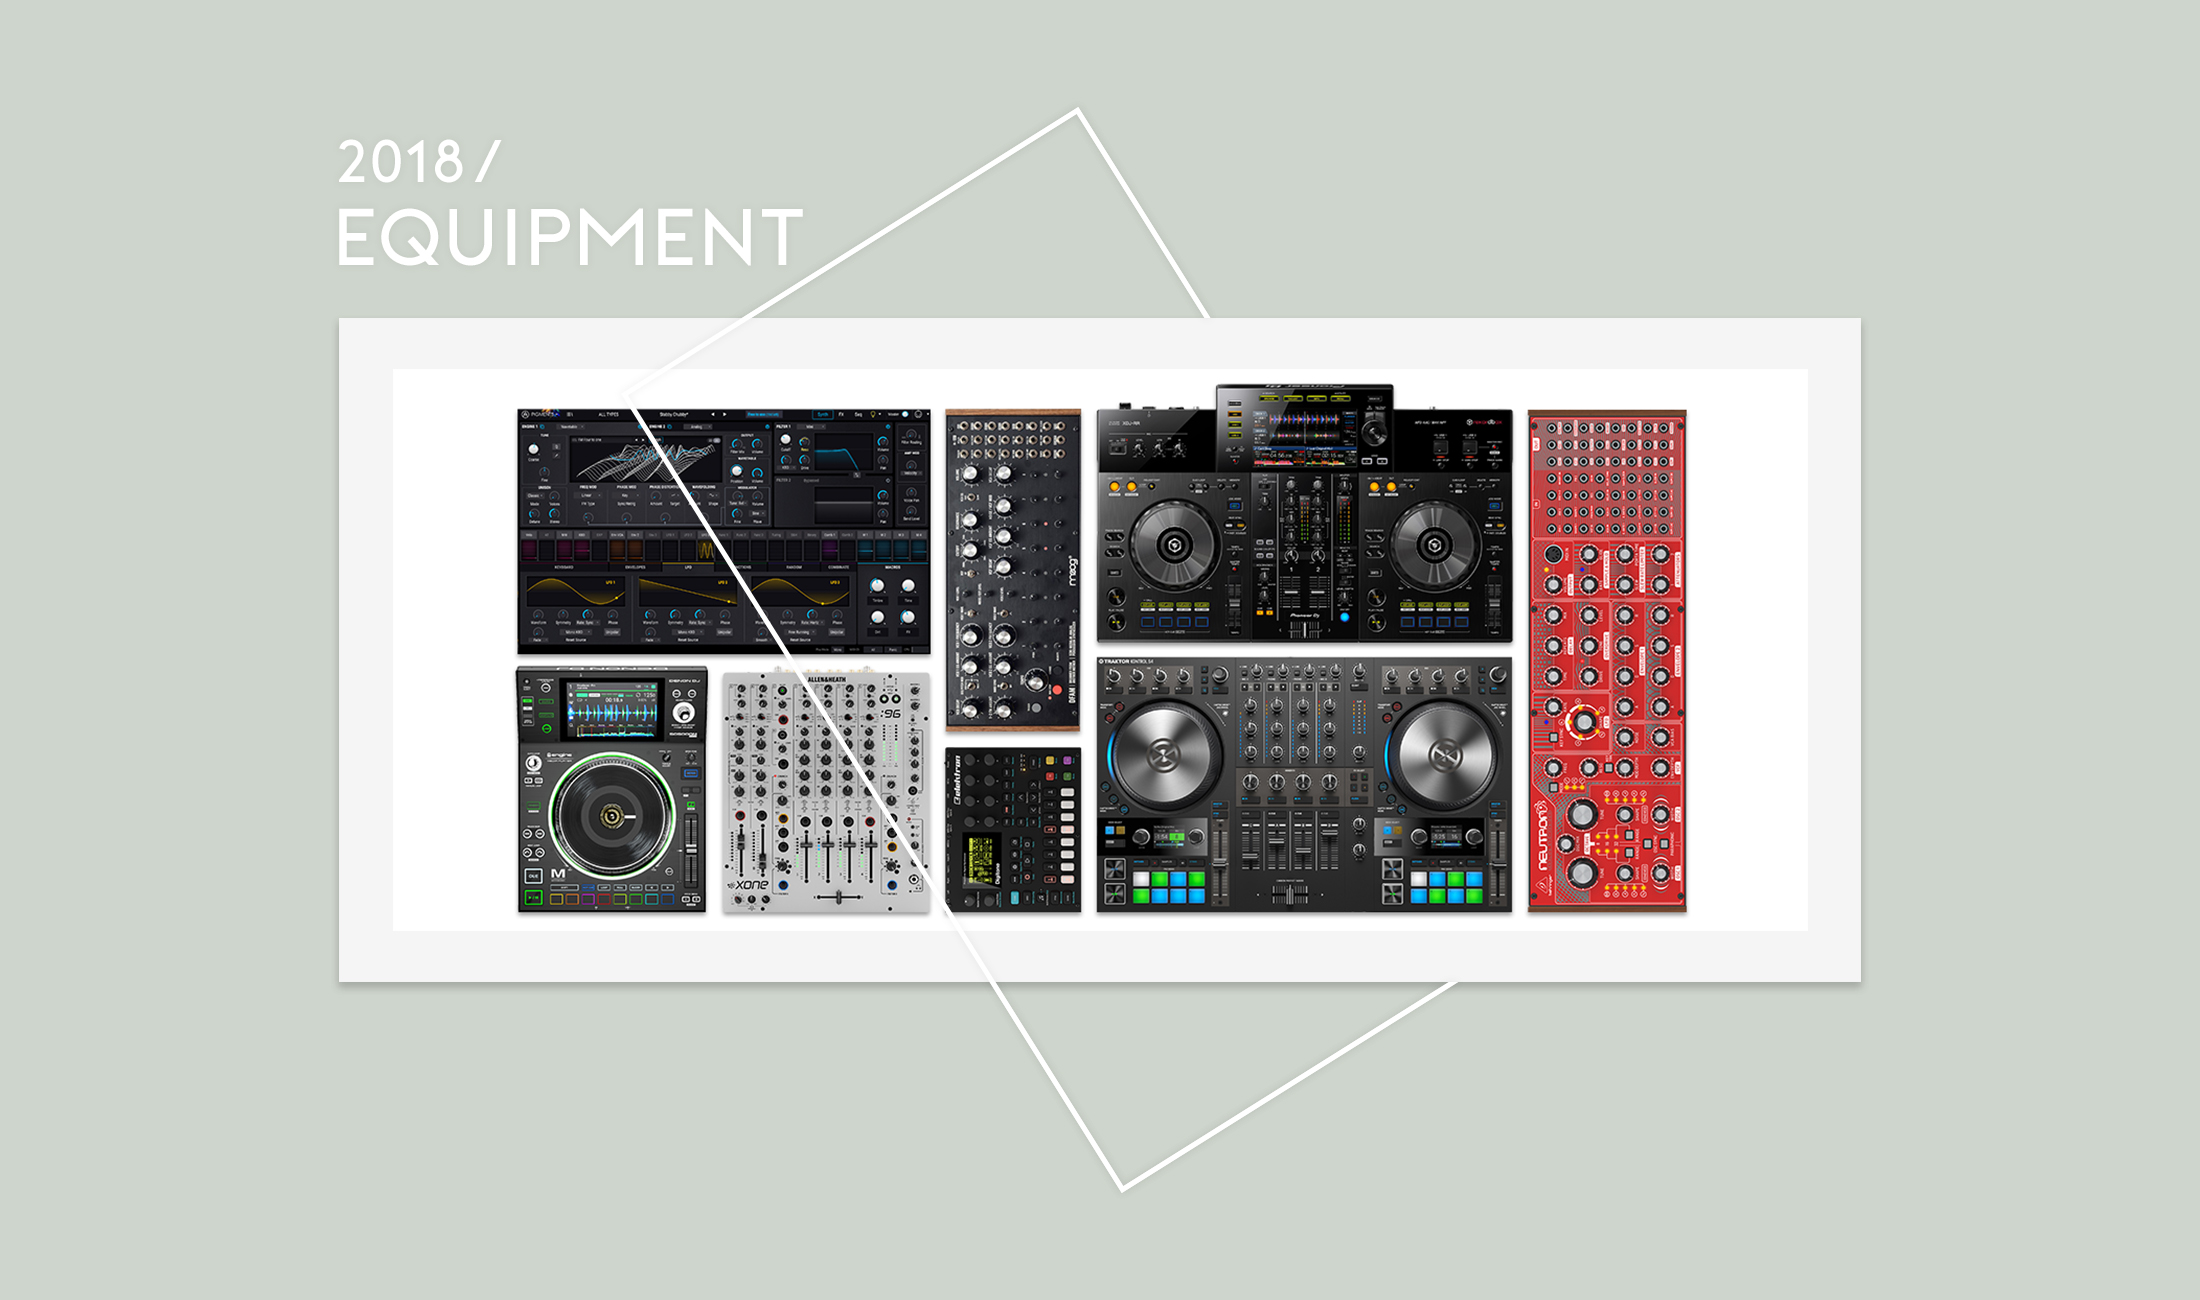 Das Beste aus 2018: Equipment für DJs & Producer